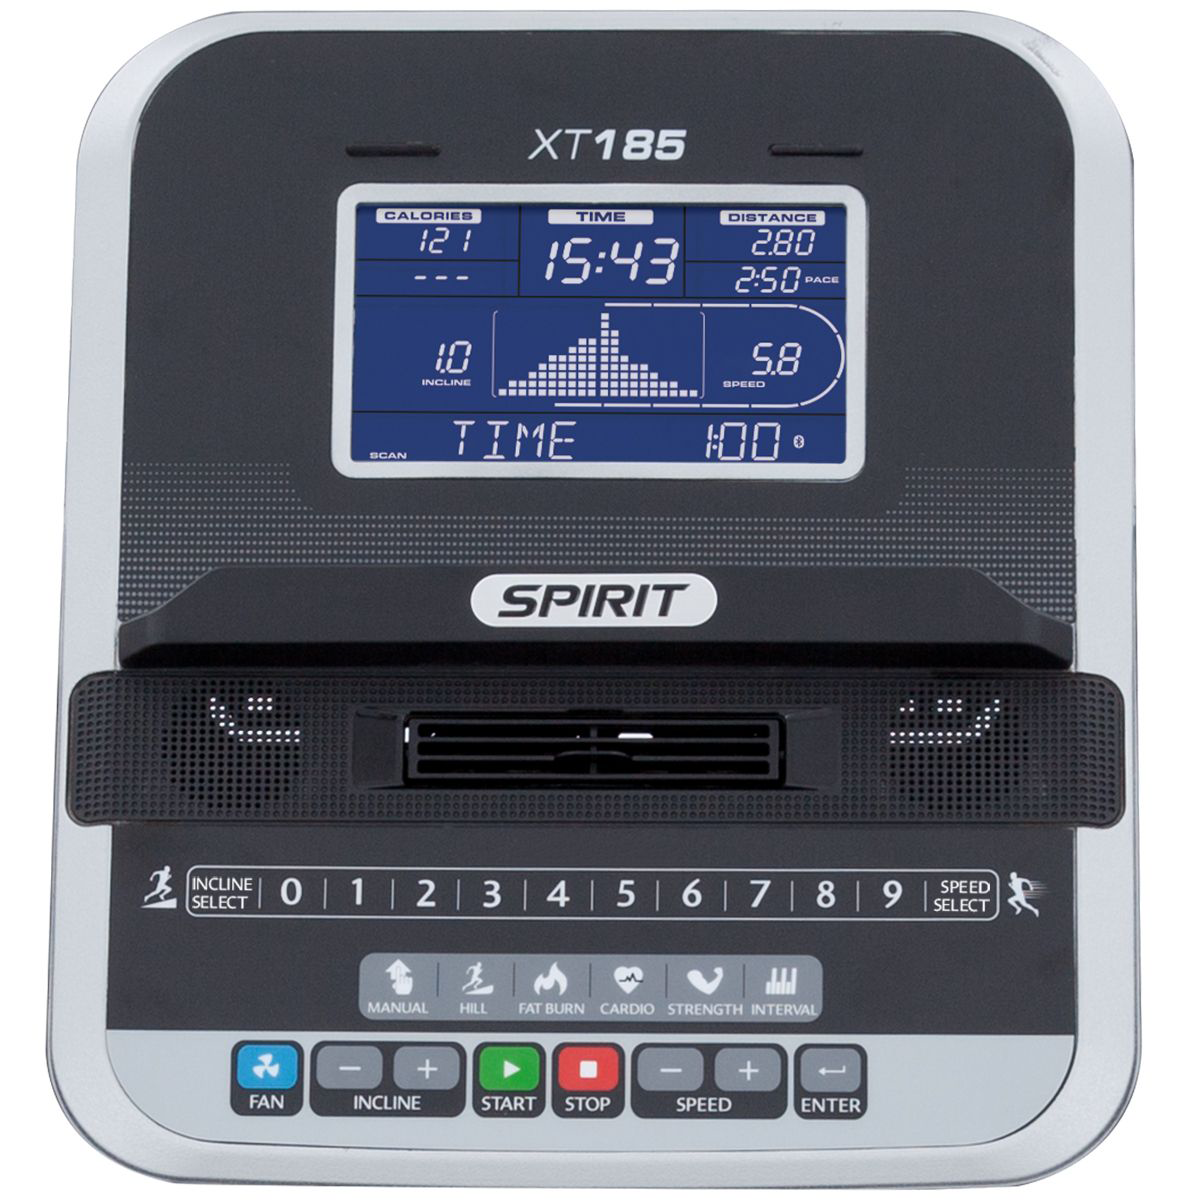 Spirit Fitness XT185 Treadmill Monitor showing blue LCD screen and control buttons.